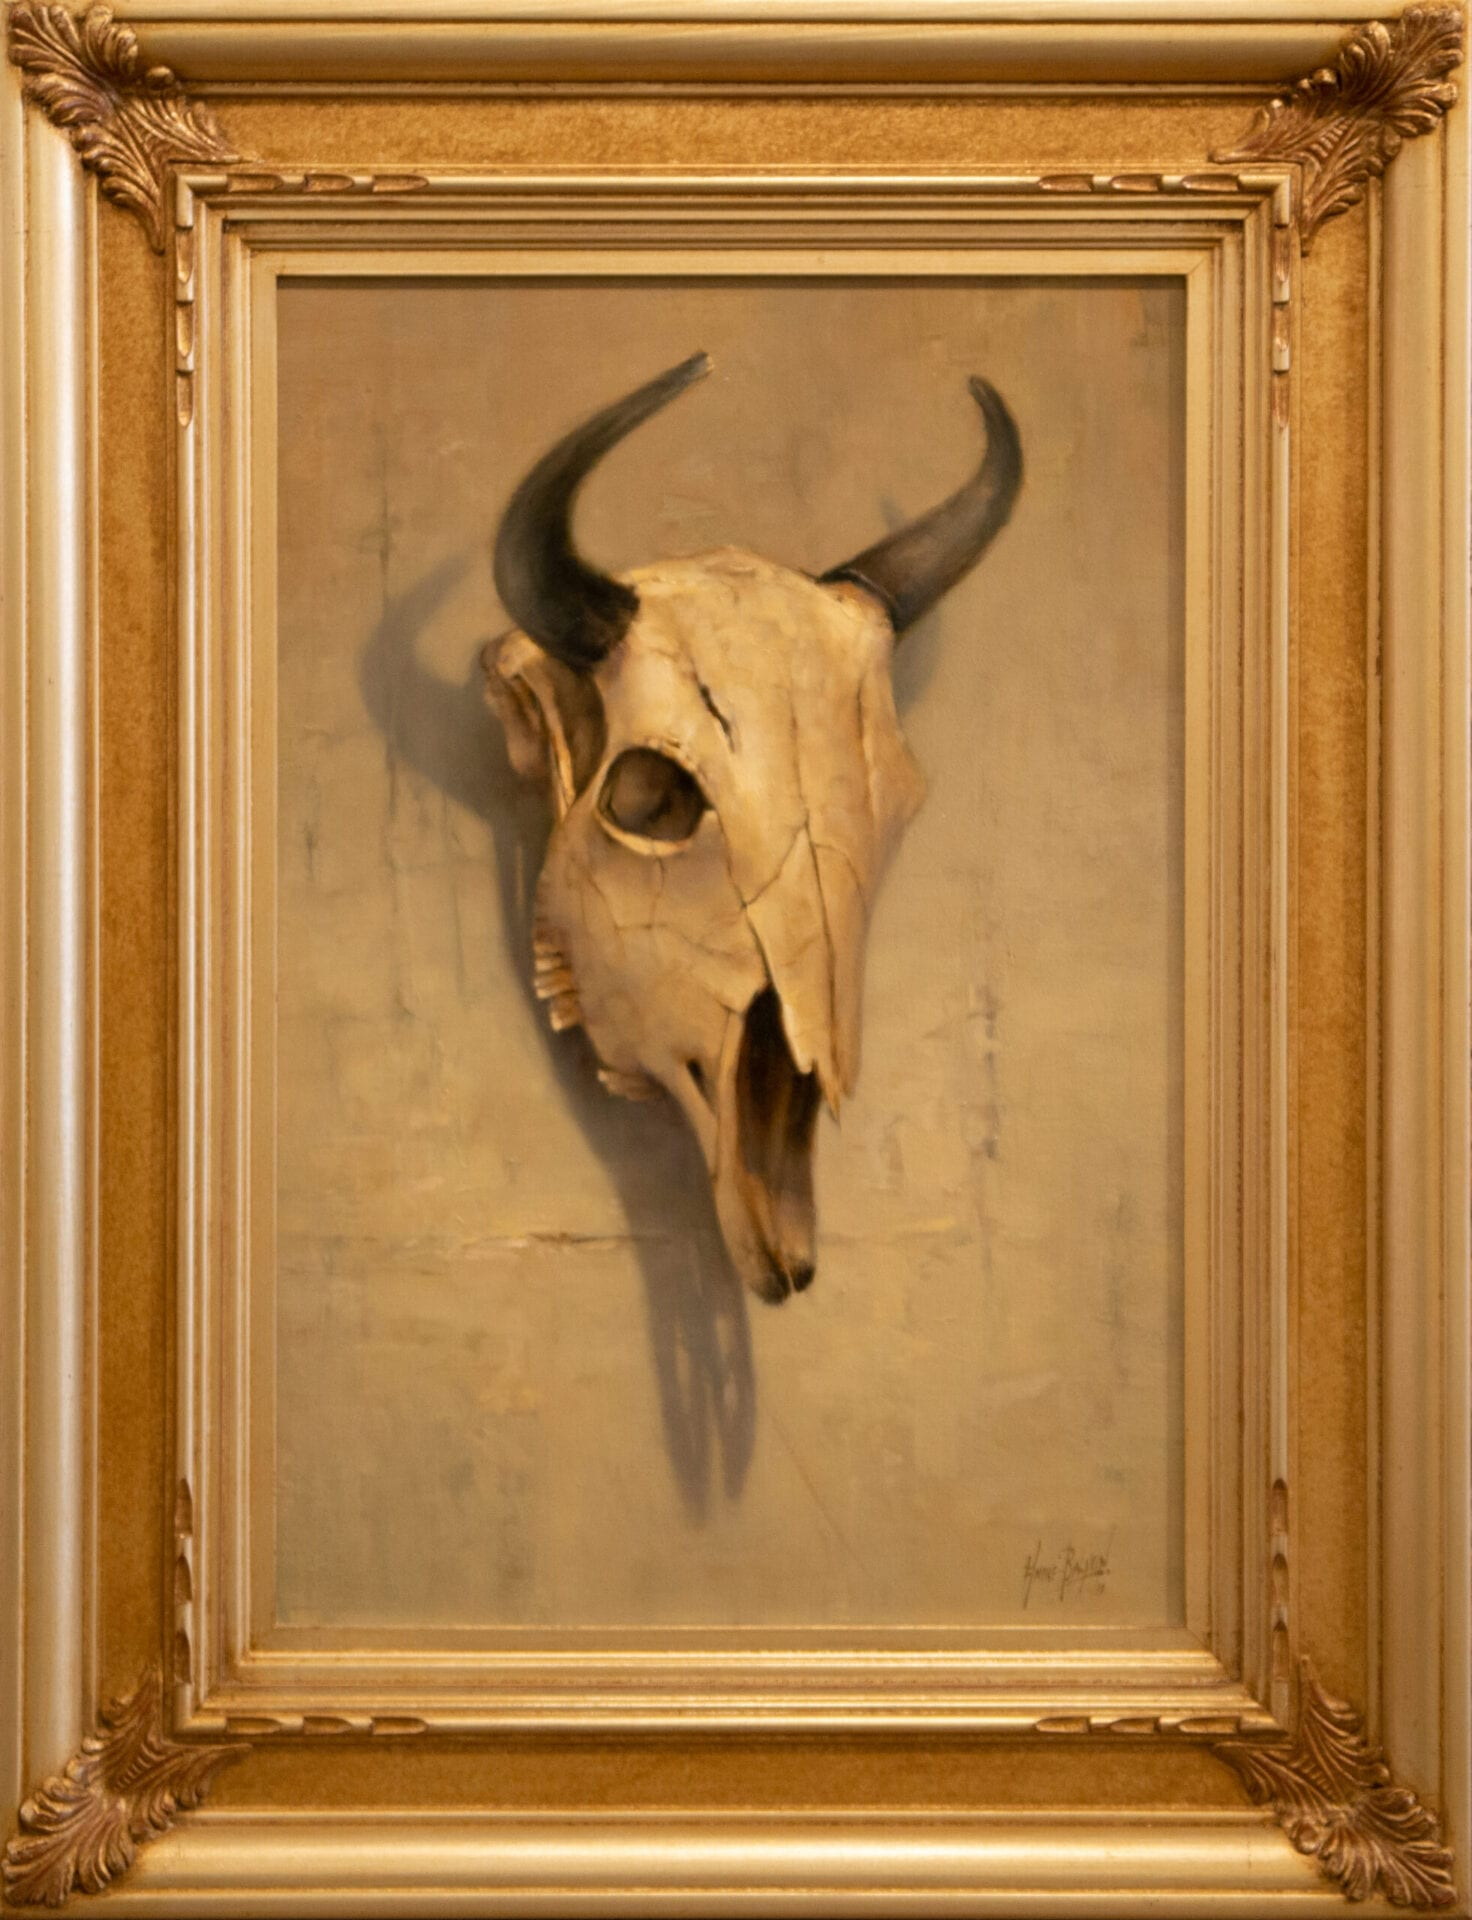 The Bison Skull | Andre Balyon | Oil | 22 x 15""